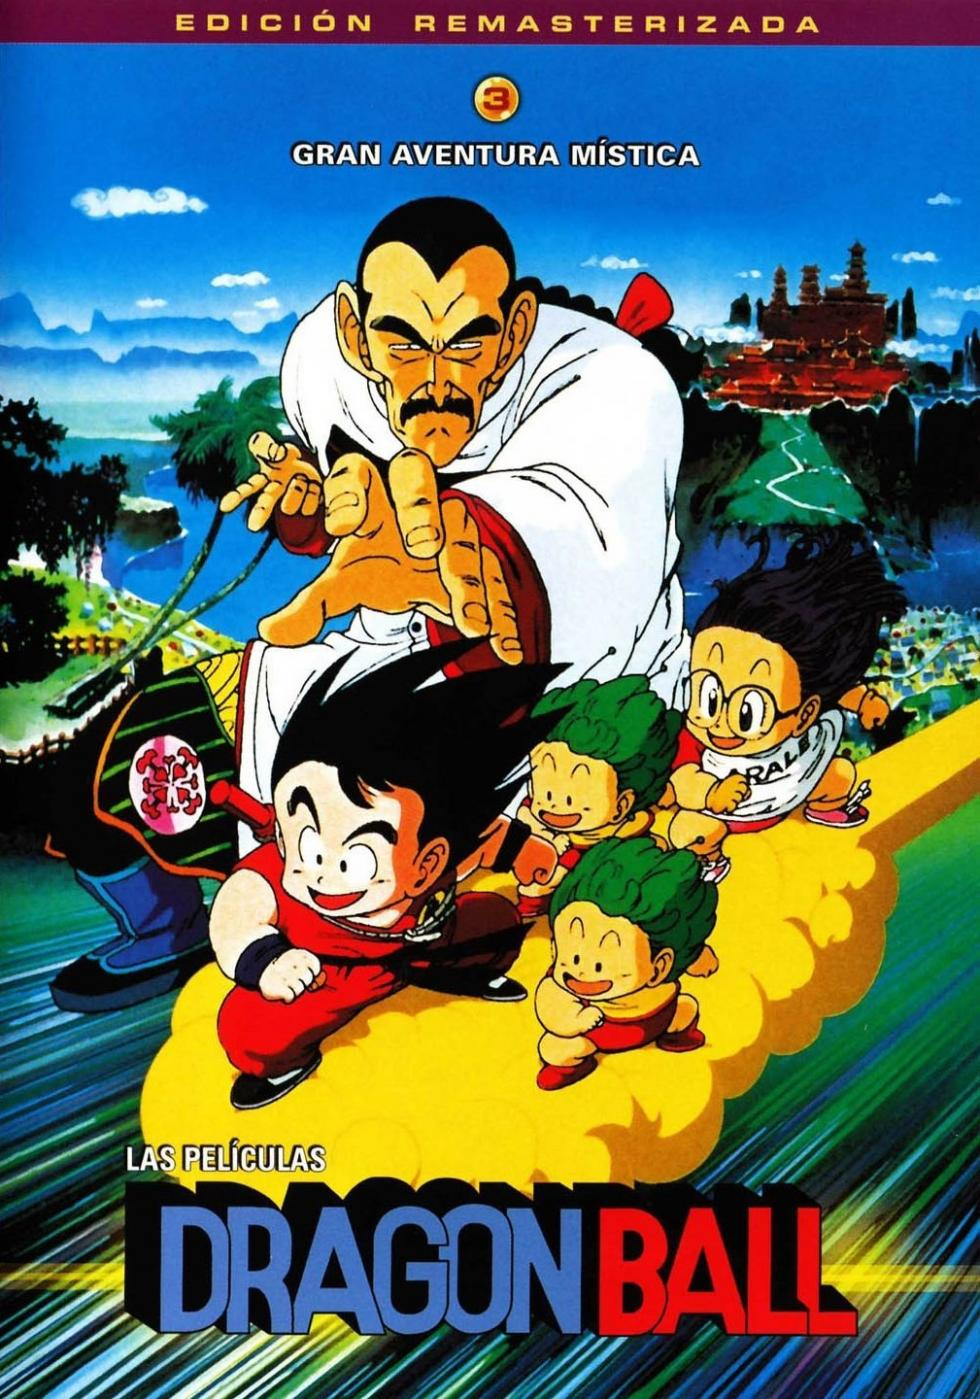 Dragon Ball: Aventura mística